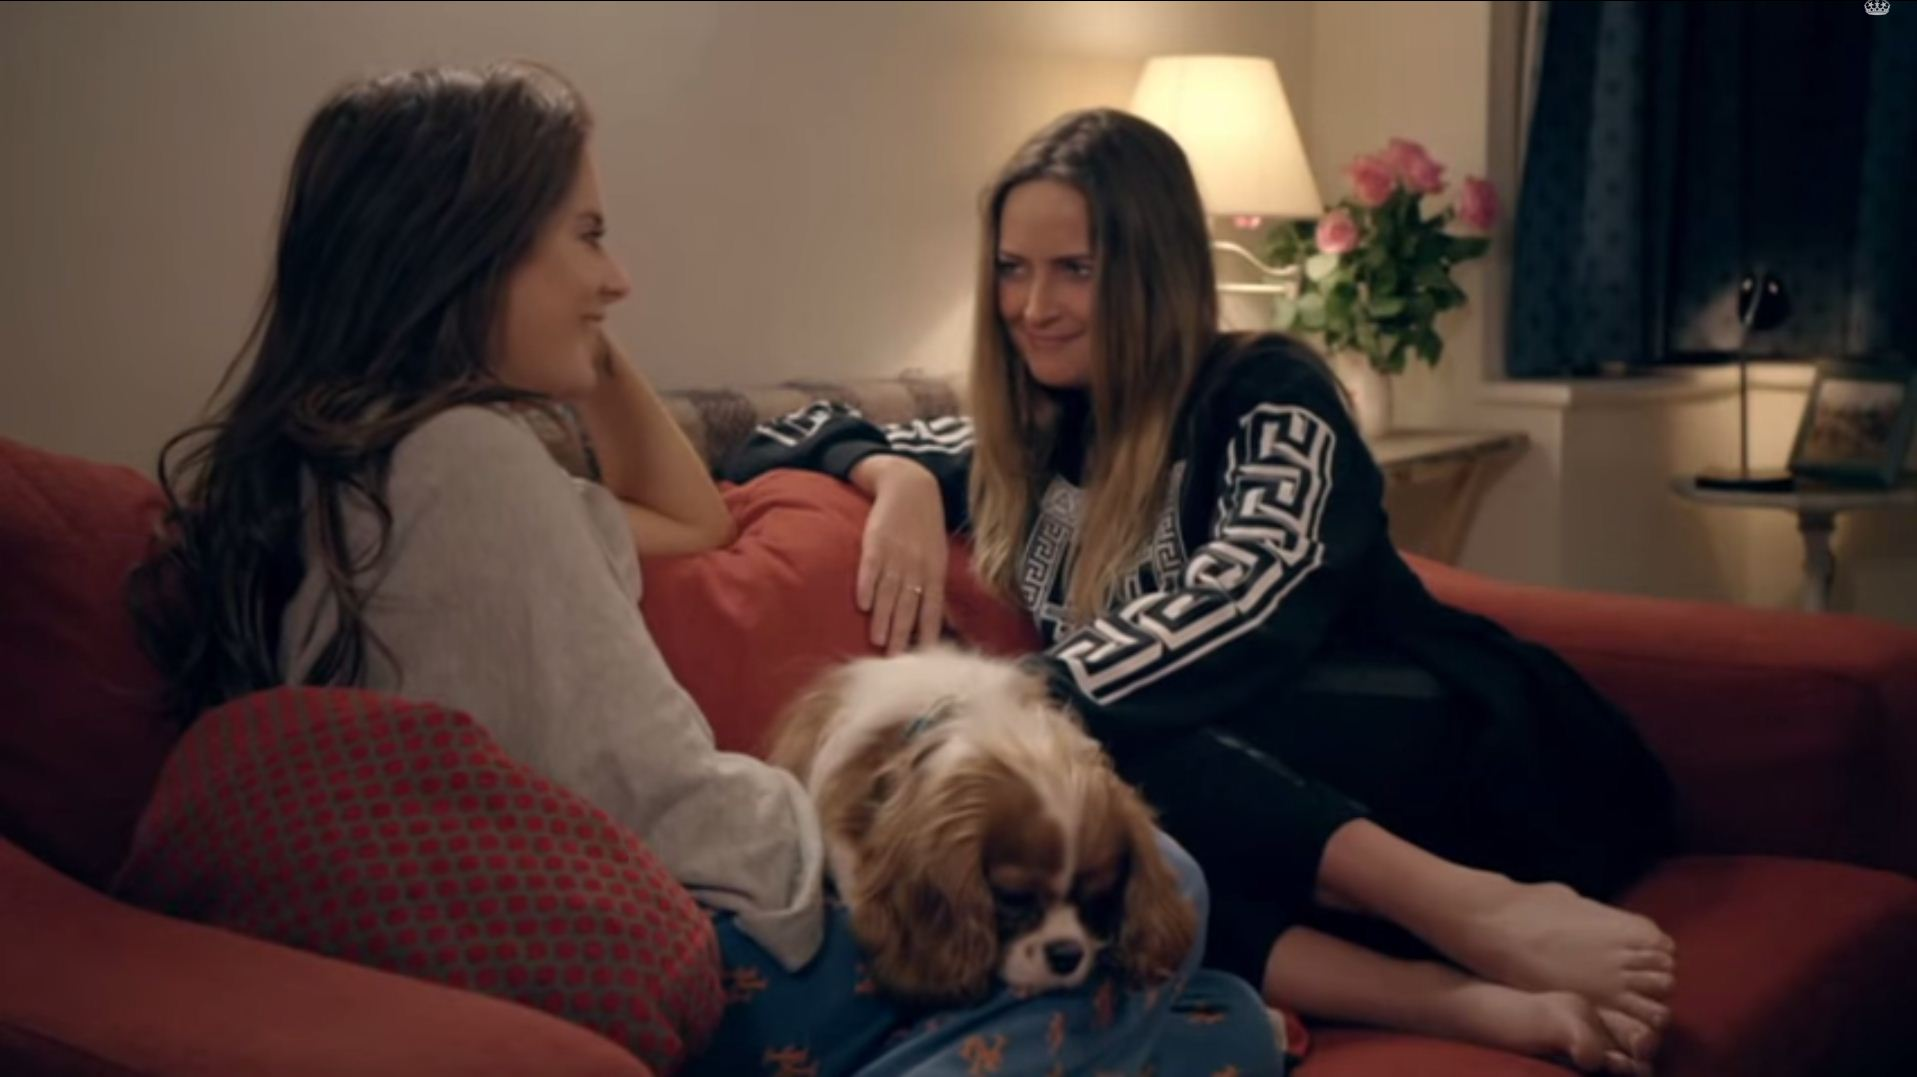 Fran Newman Young's Made In Chelsea blog: 'Should Binky forgive cheating Alex or show him the door?'